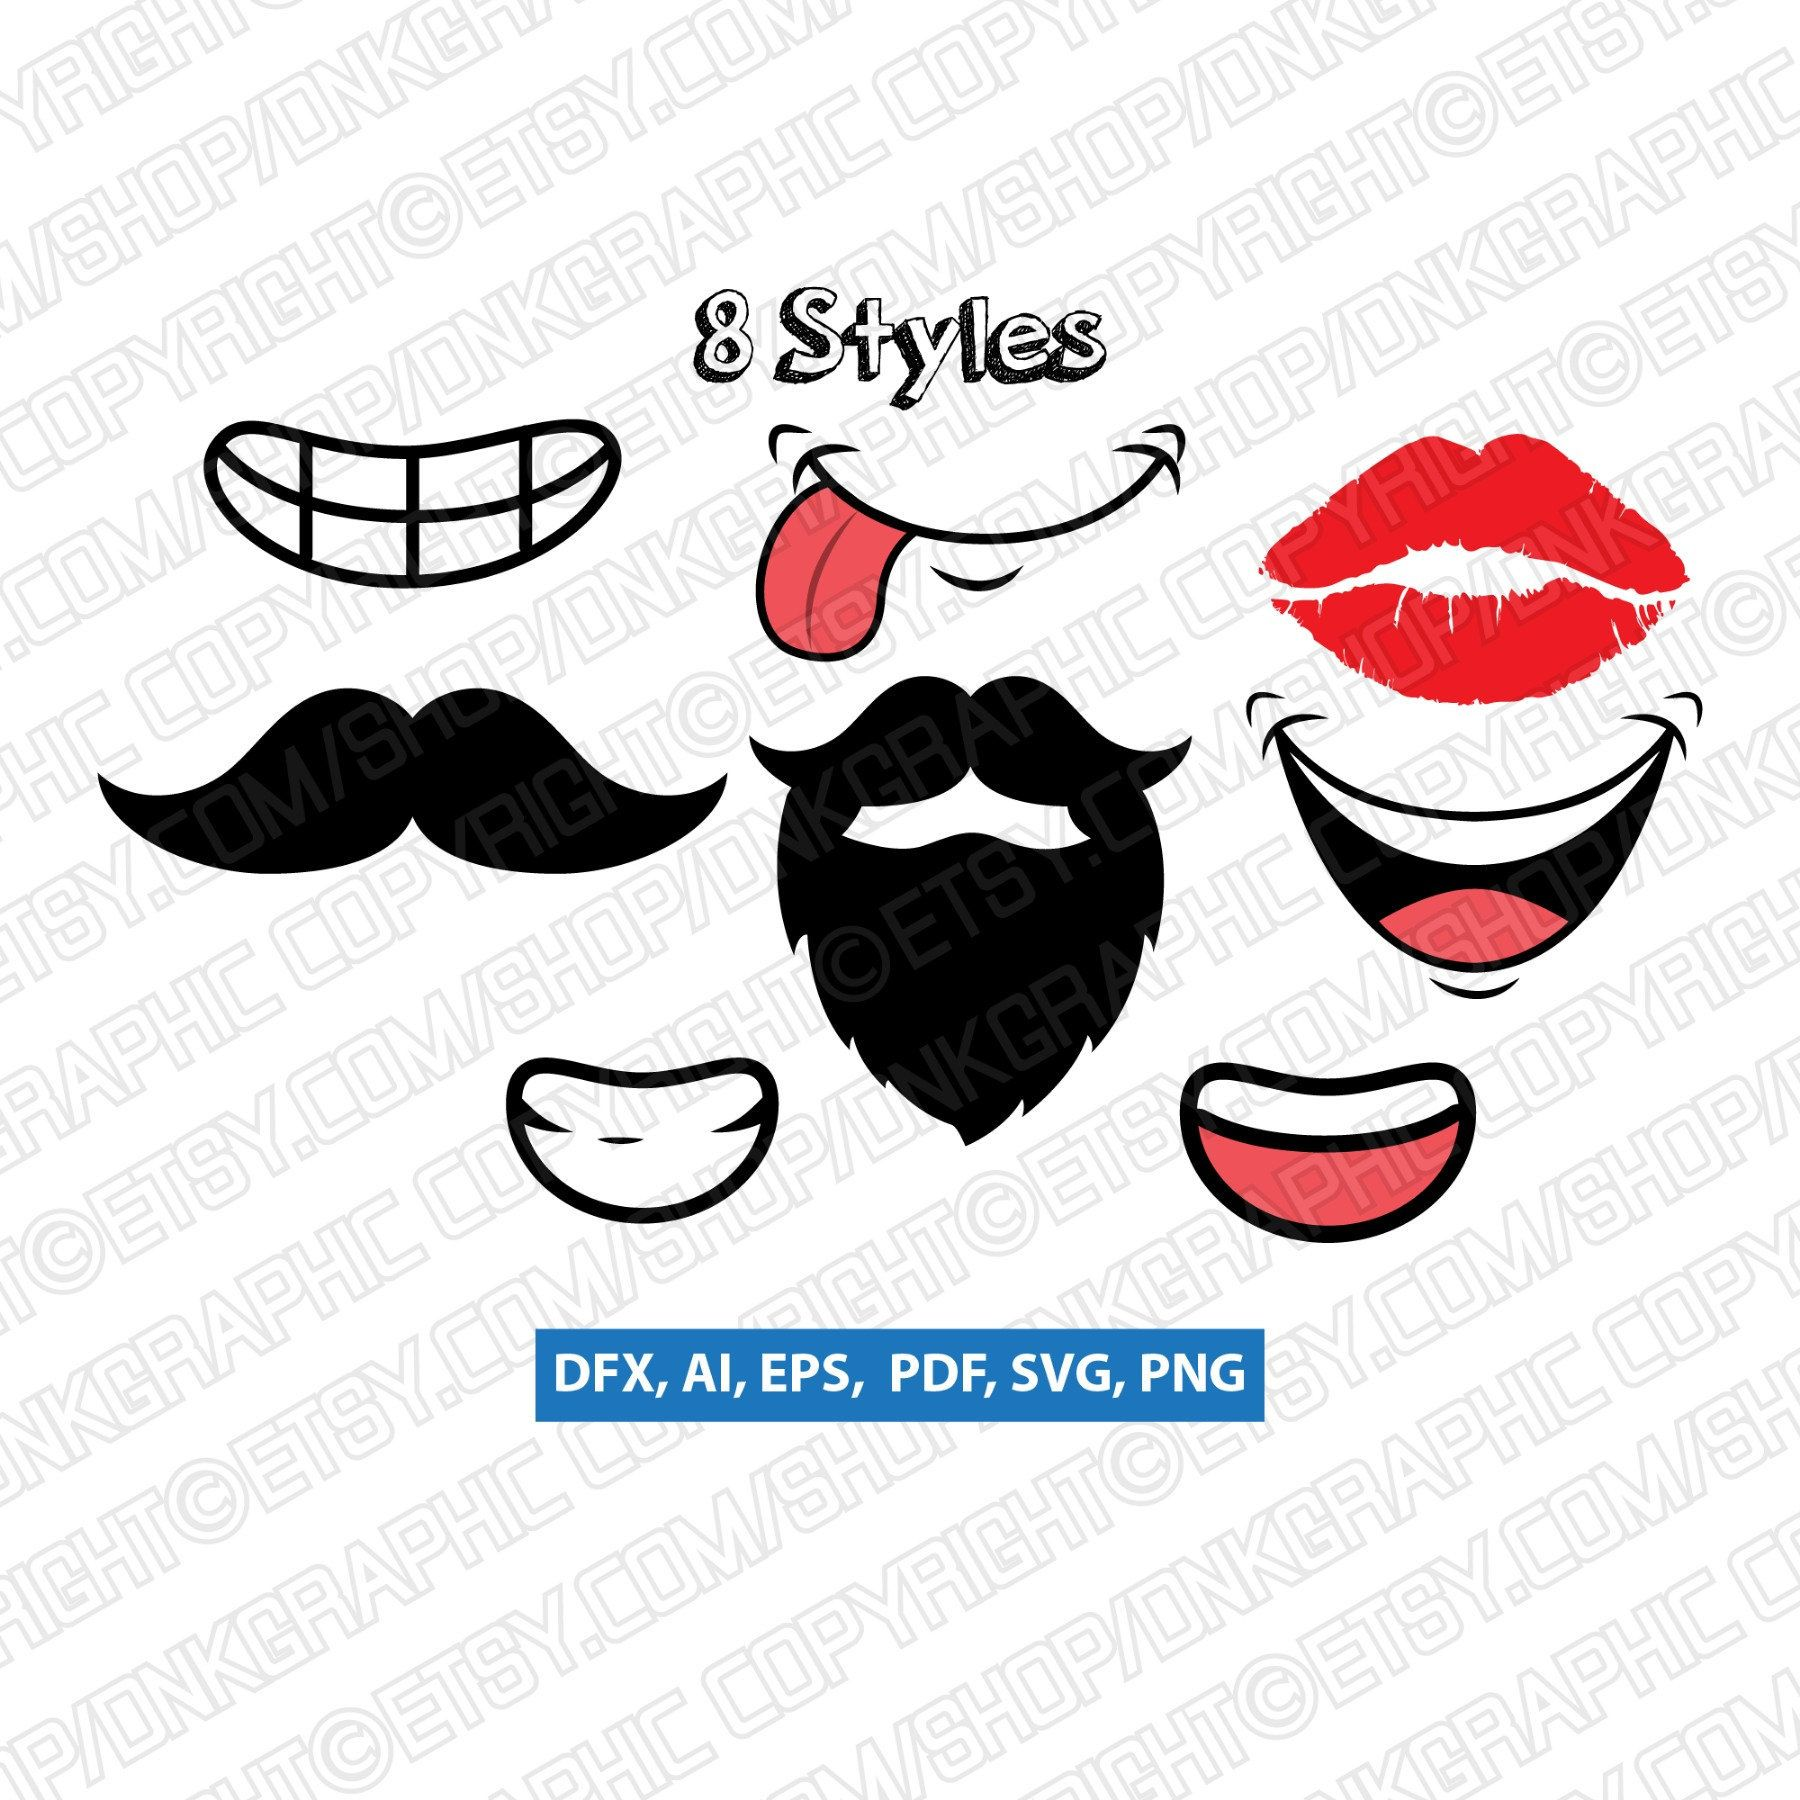 Pdf Eps Cricut Clipart Mask Fashion Print File Cutting Silhouette Dxf Png Vector Design Jpg Nose With Mustache Svg